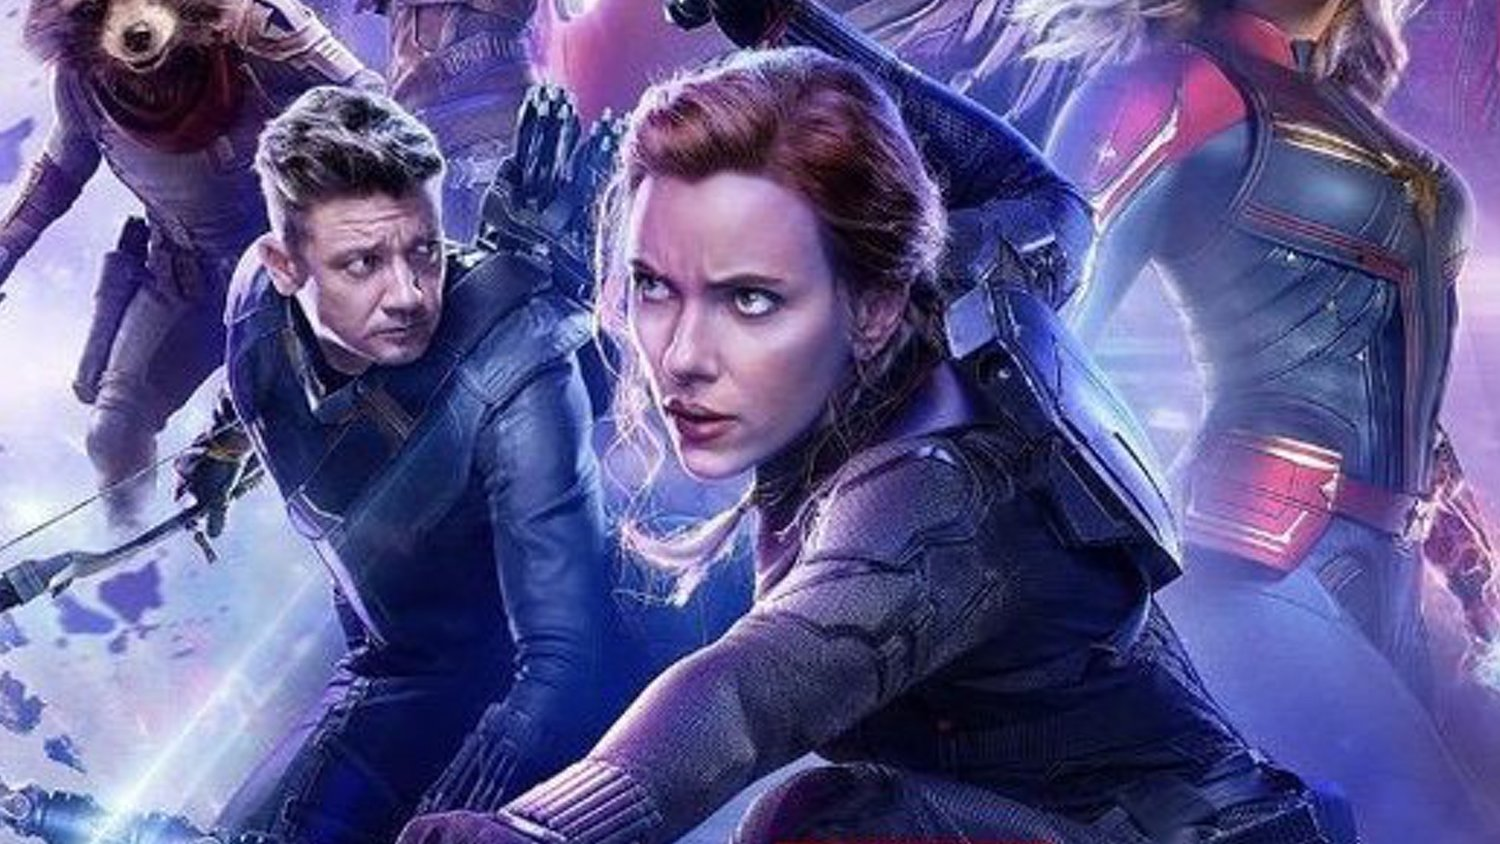 Black Widow Is Front And Center In New Russian Poster For Avengers